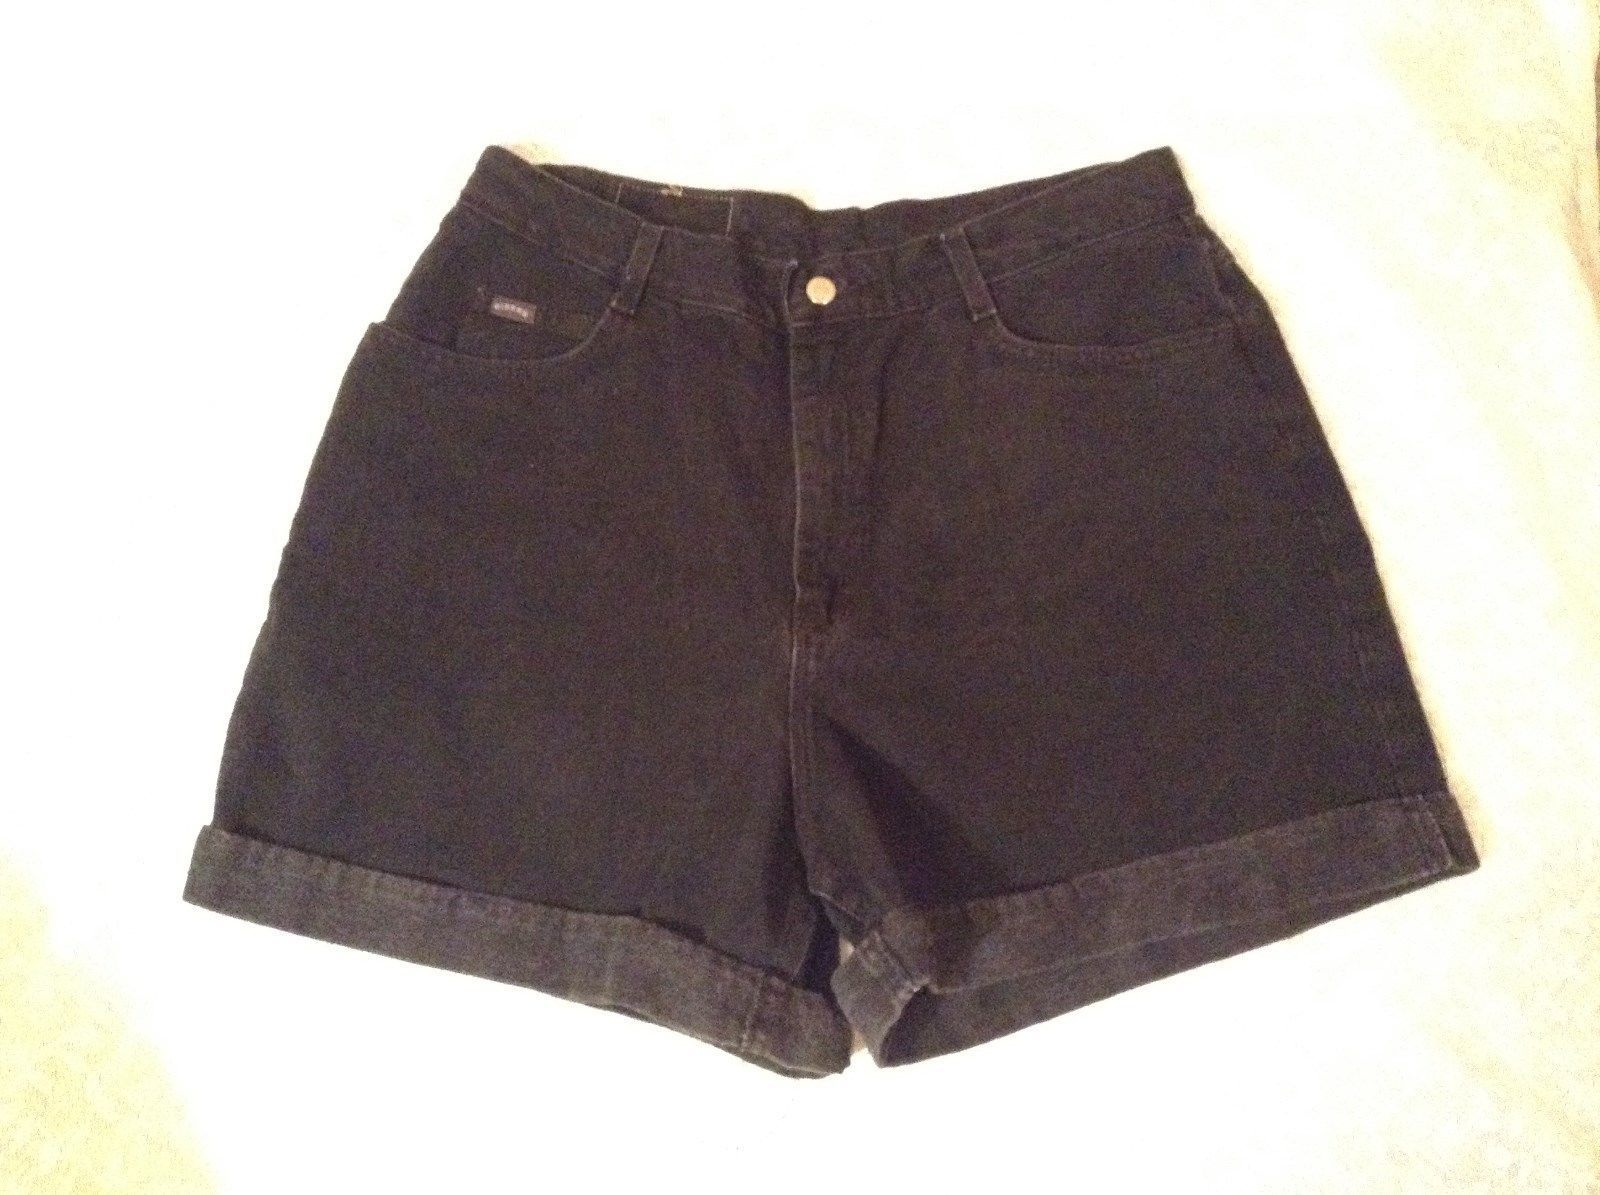 Riders Black Cuffed Bottom Jean Shorts 100 Percent Cotton Size 18M